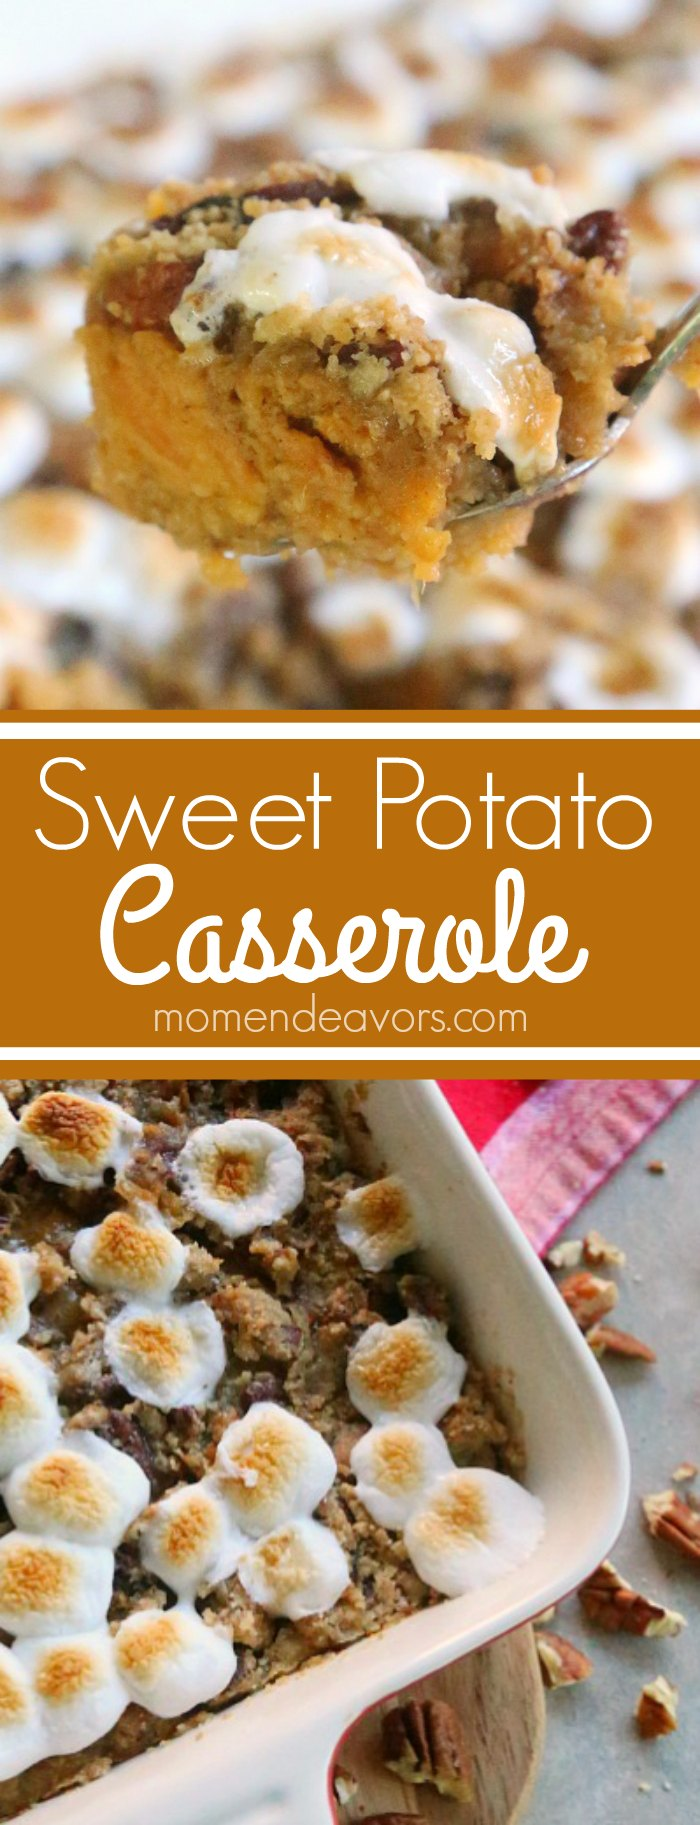 Candied Sweet Potato Casserole with Streusel & Marshmallows